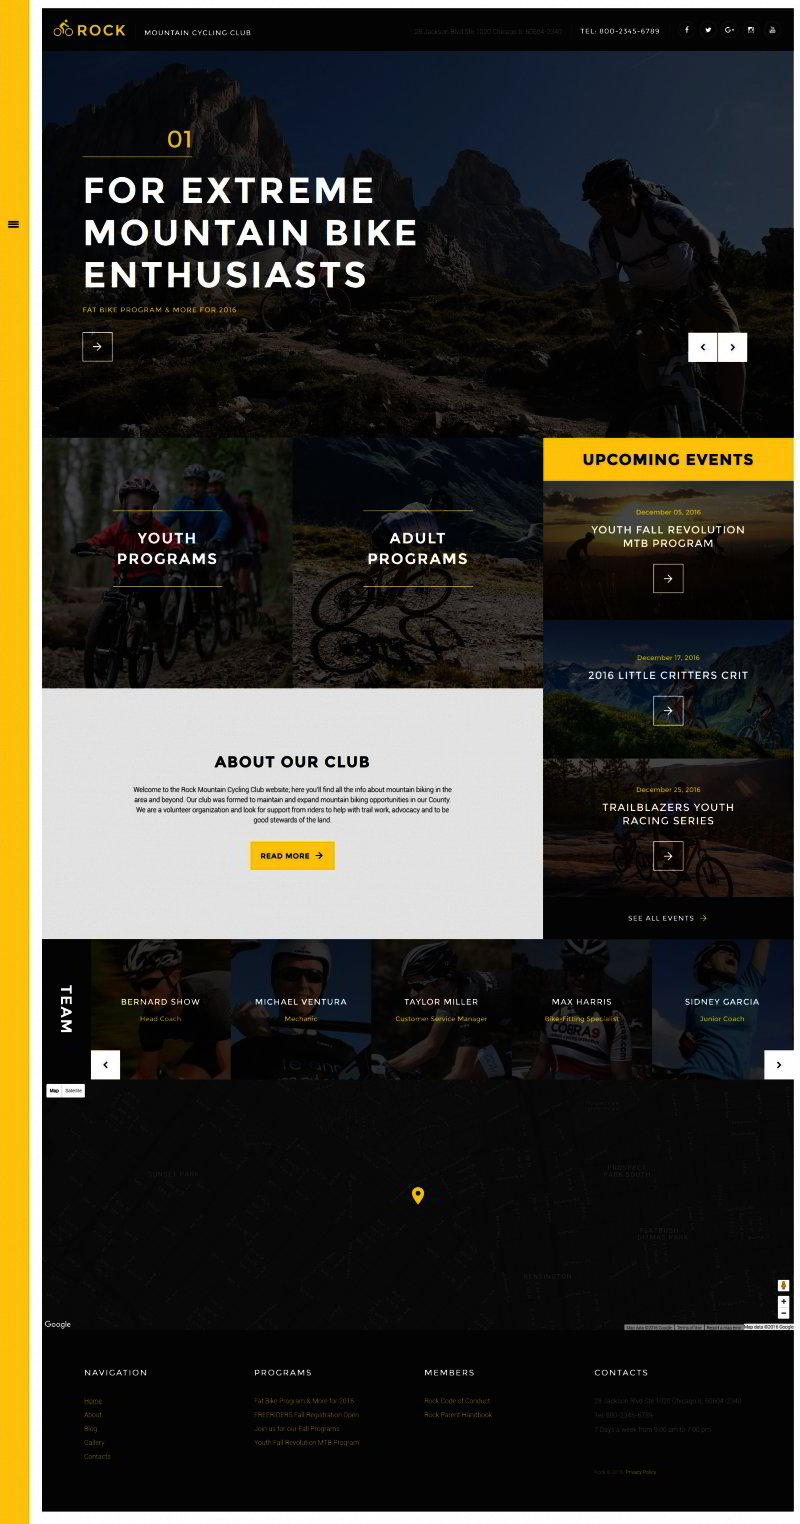 Rock - Mountain Cycling Club Responsive Website Template